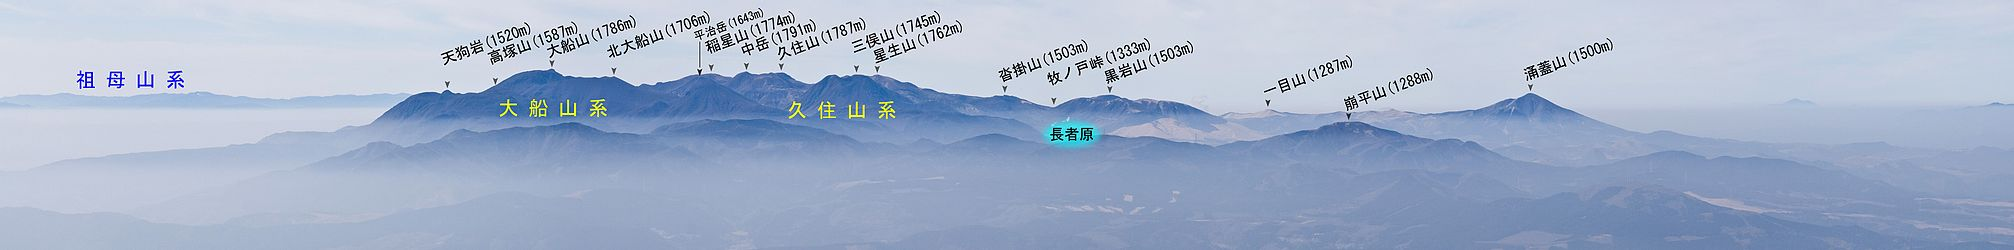 Kuju Mountains from Mt.Yufudake 01-2.jpg